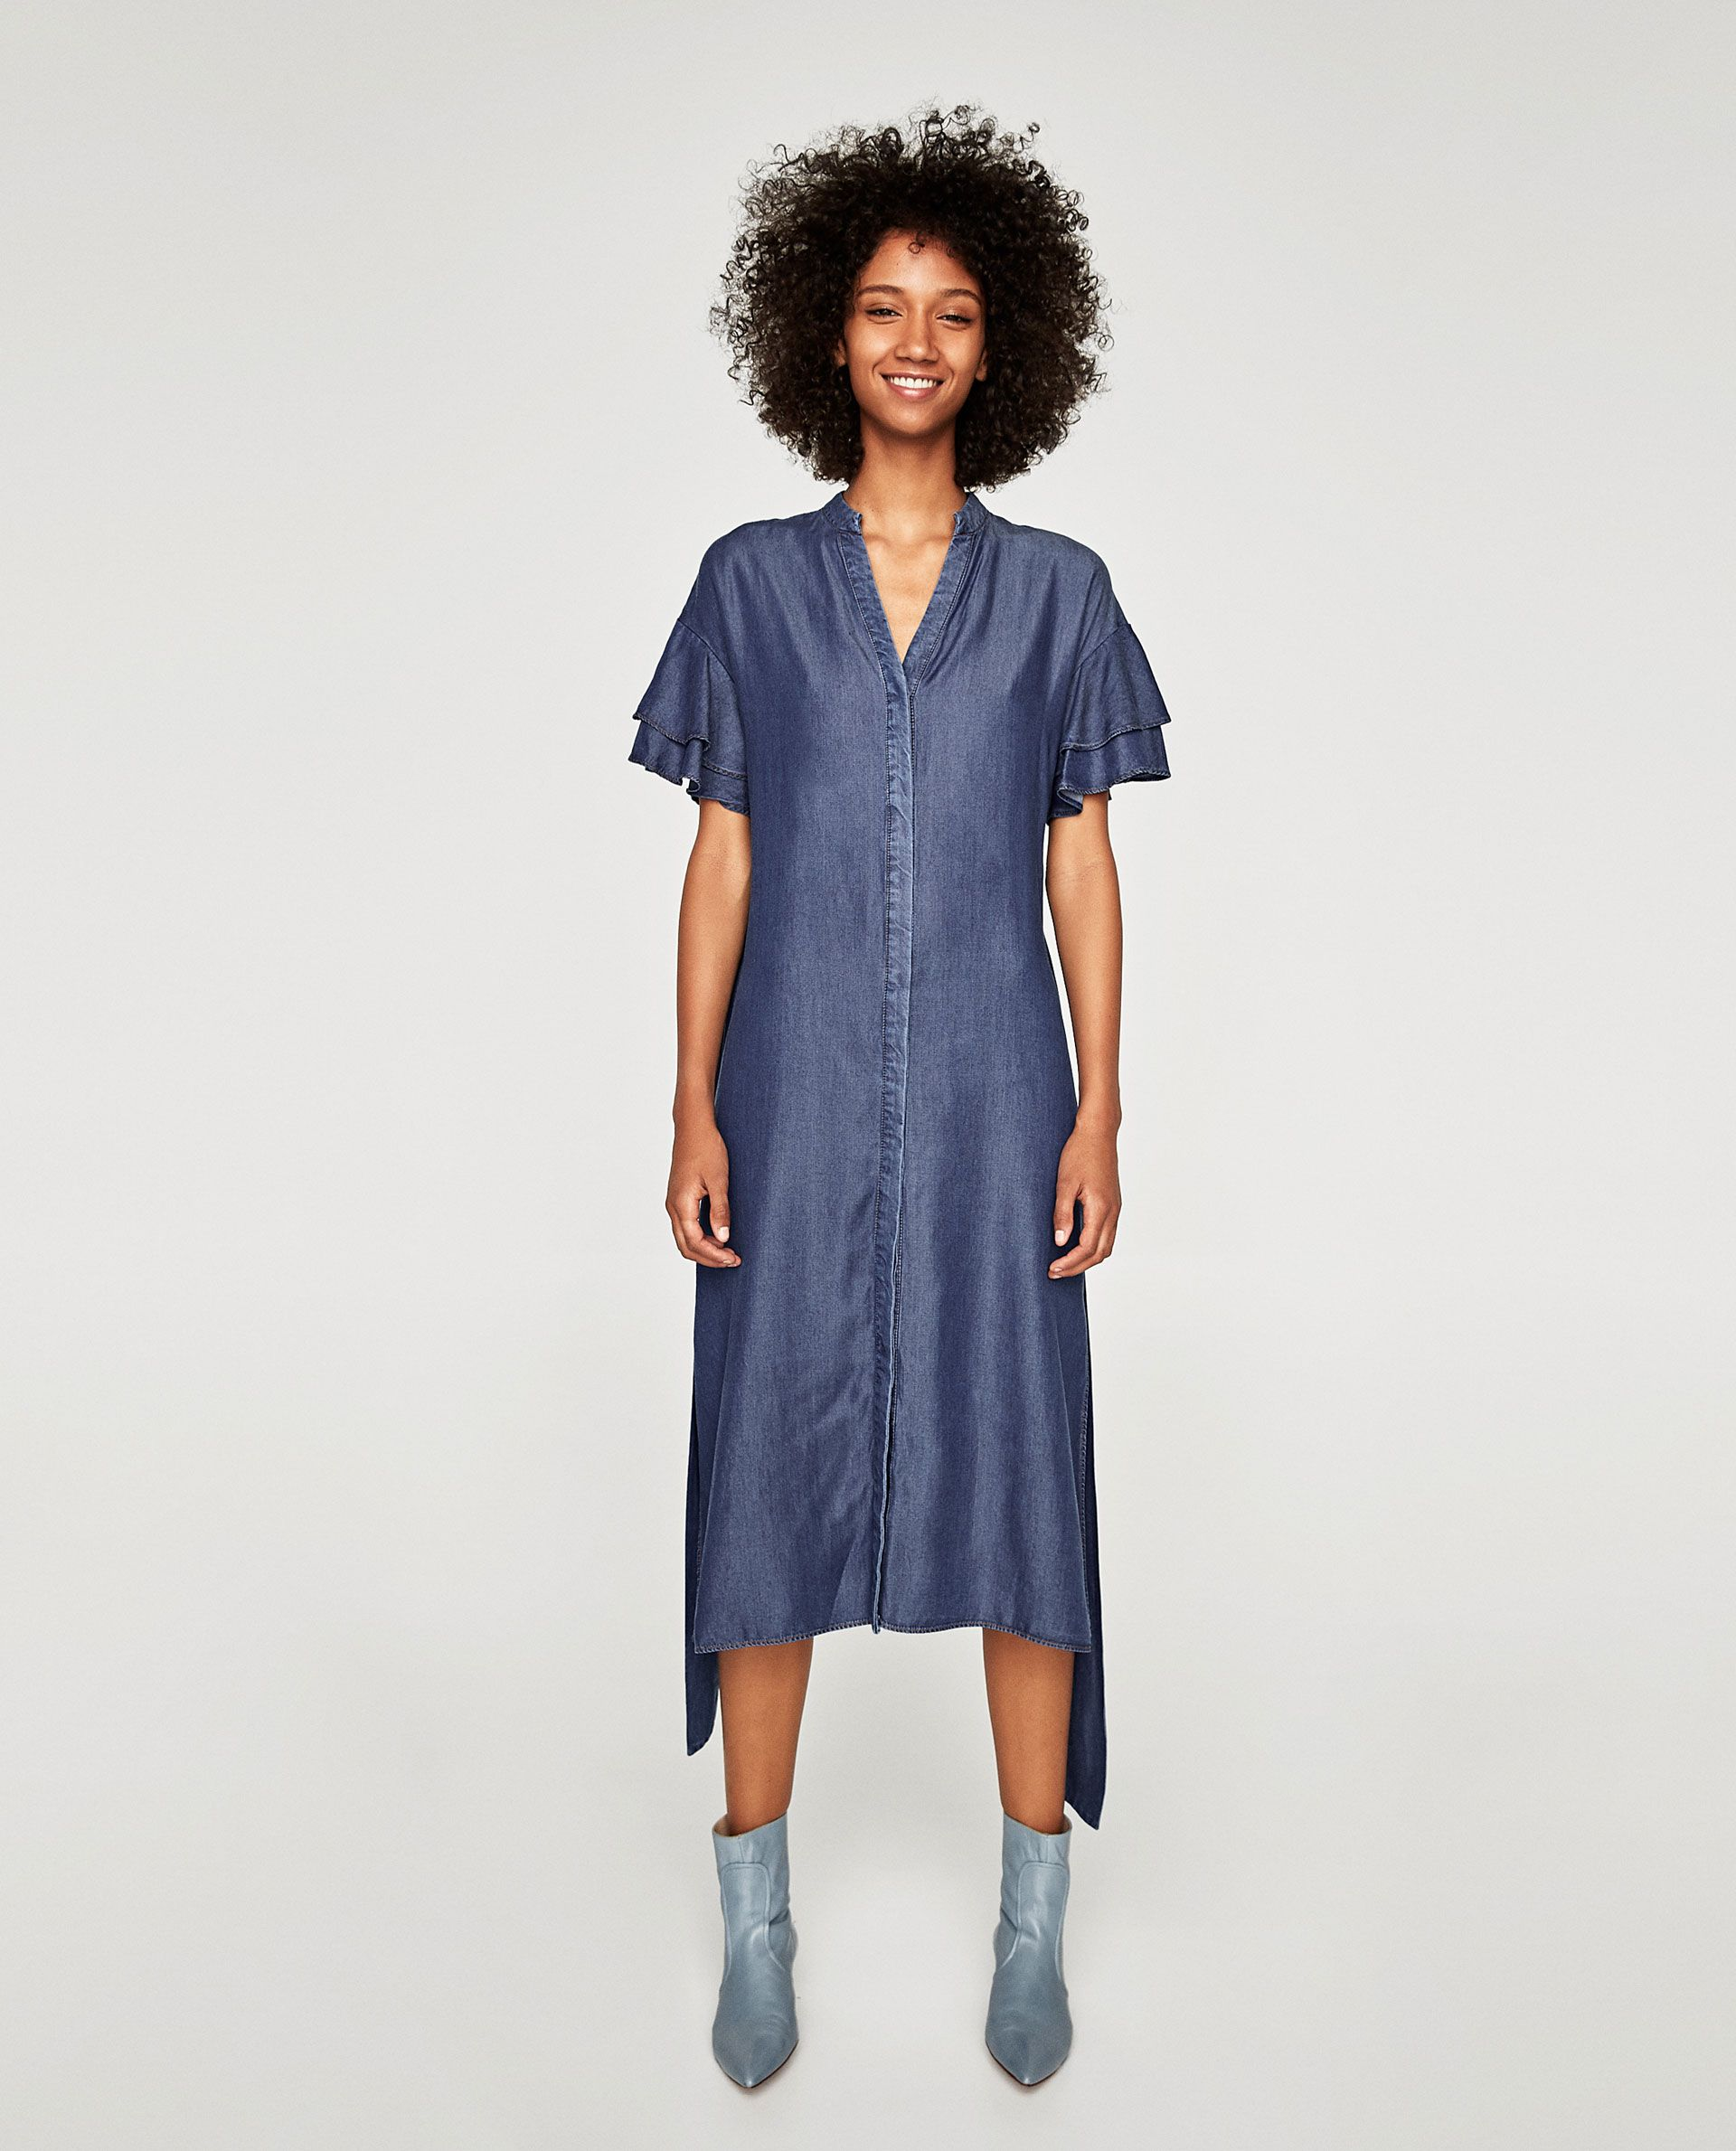 VESTIDO MANGA VOLANTE   Zara women and Woman bea4f503fc4